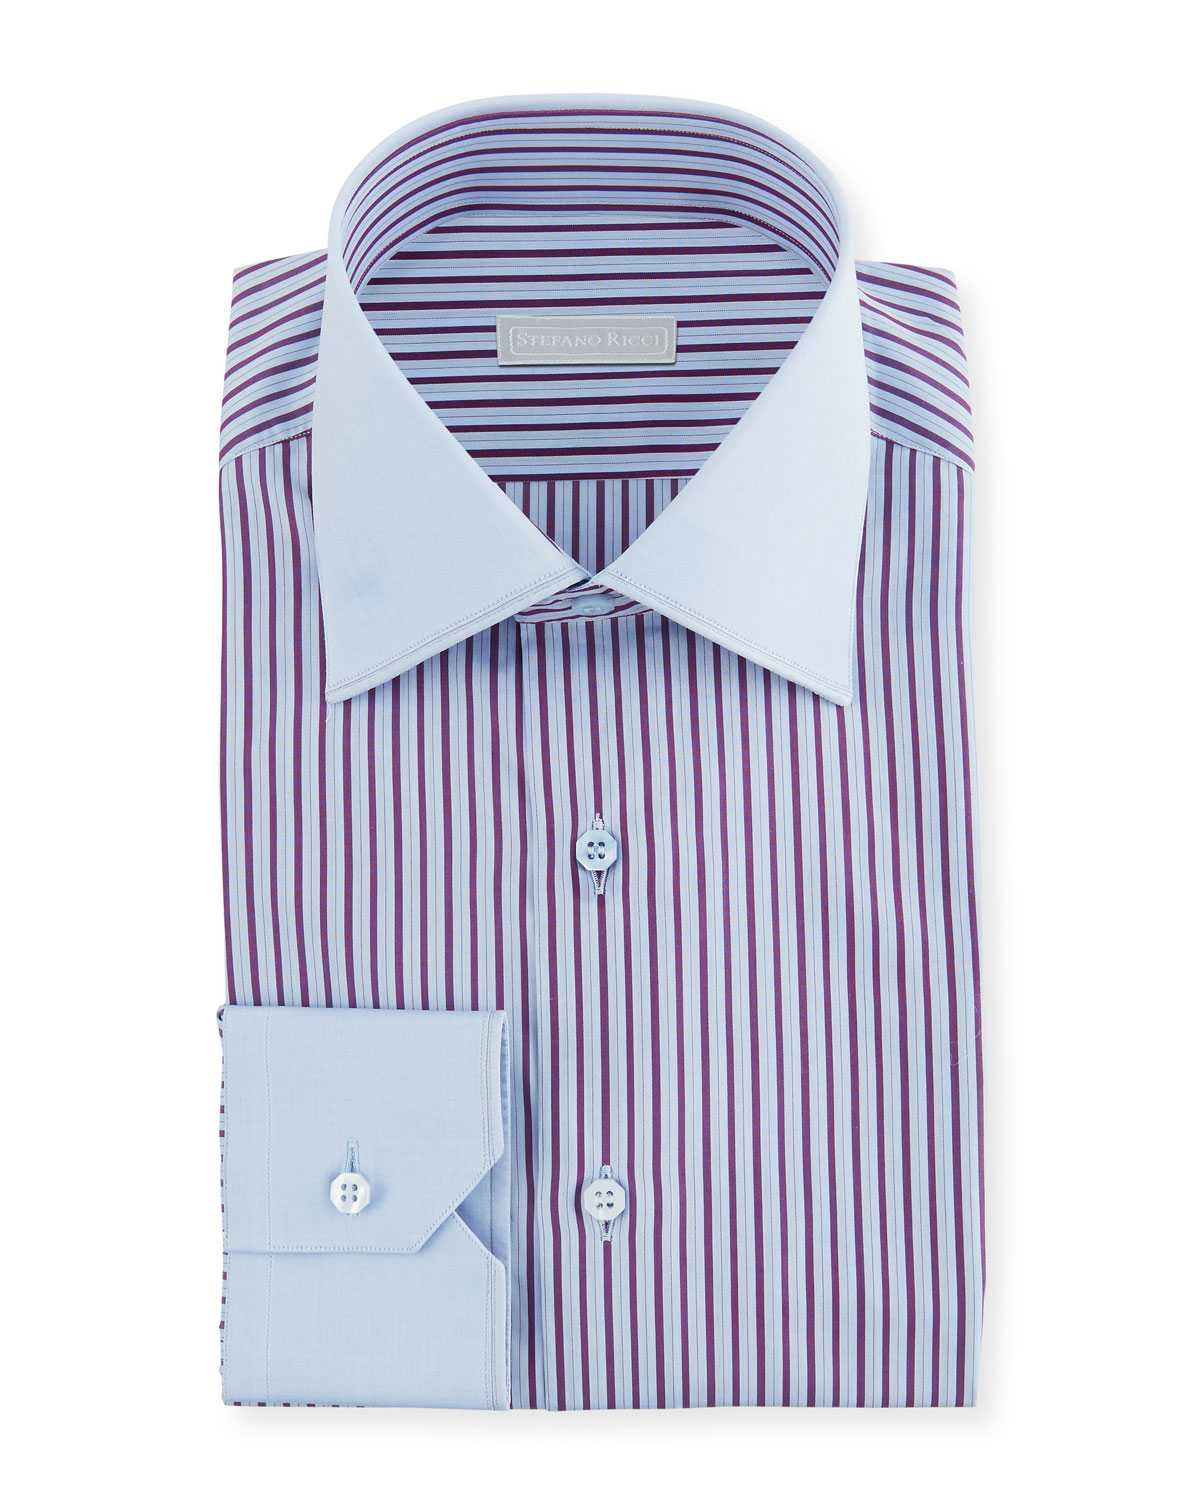 Stefano Ricci Mens Wide Stripe Dress Shirt With Solid Trim Neiman